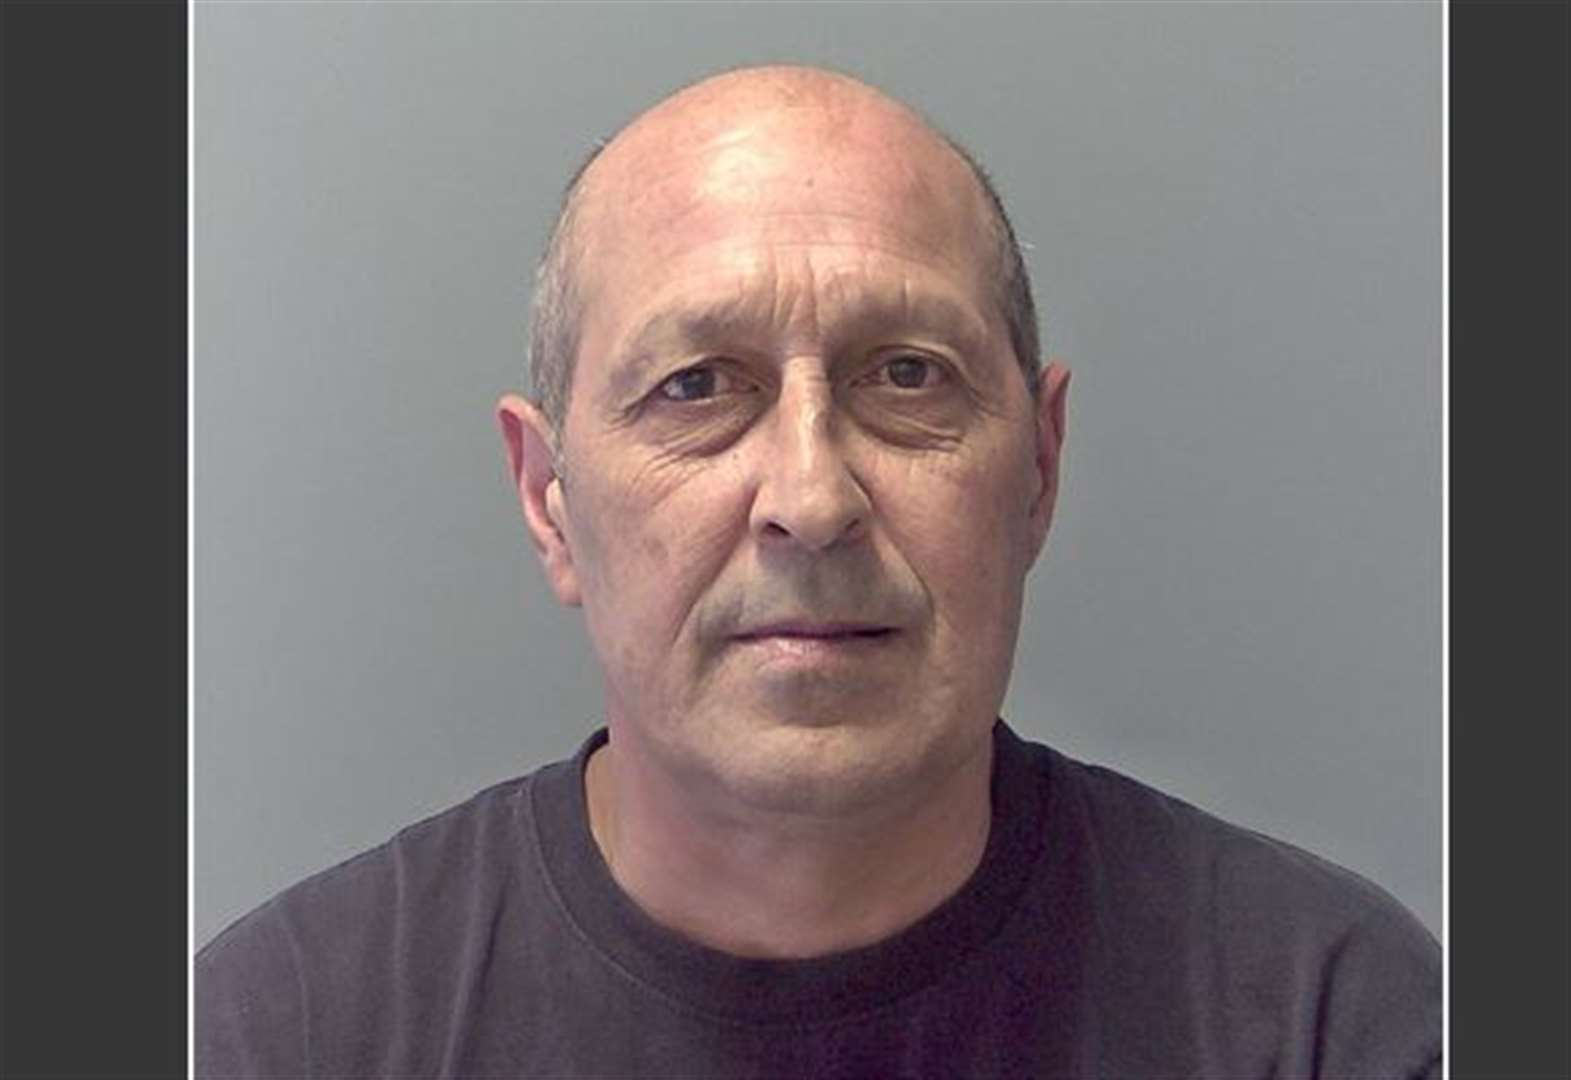 Police hunting for a Newmarket man who has breached his suspended prison sentence